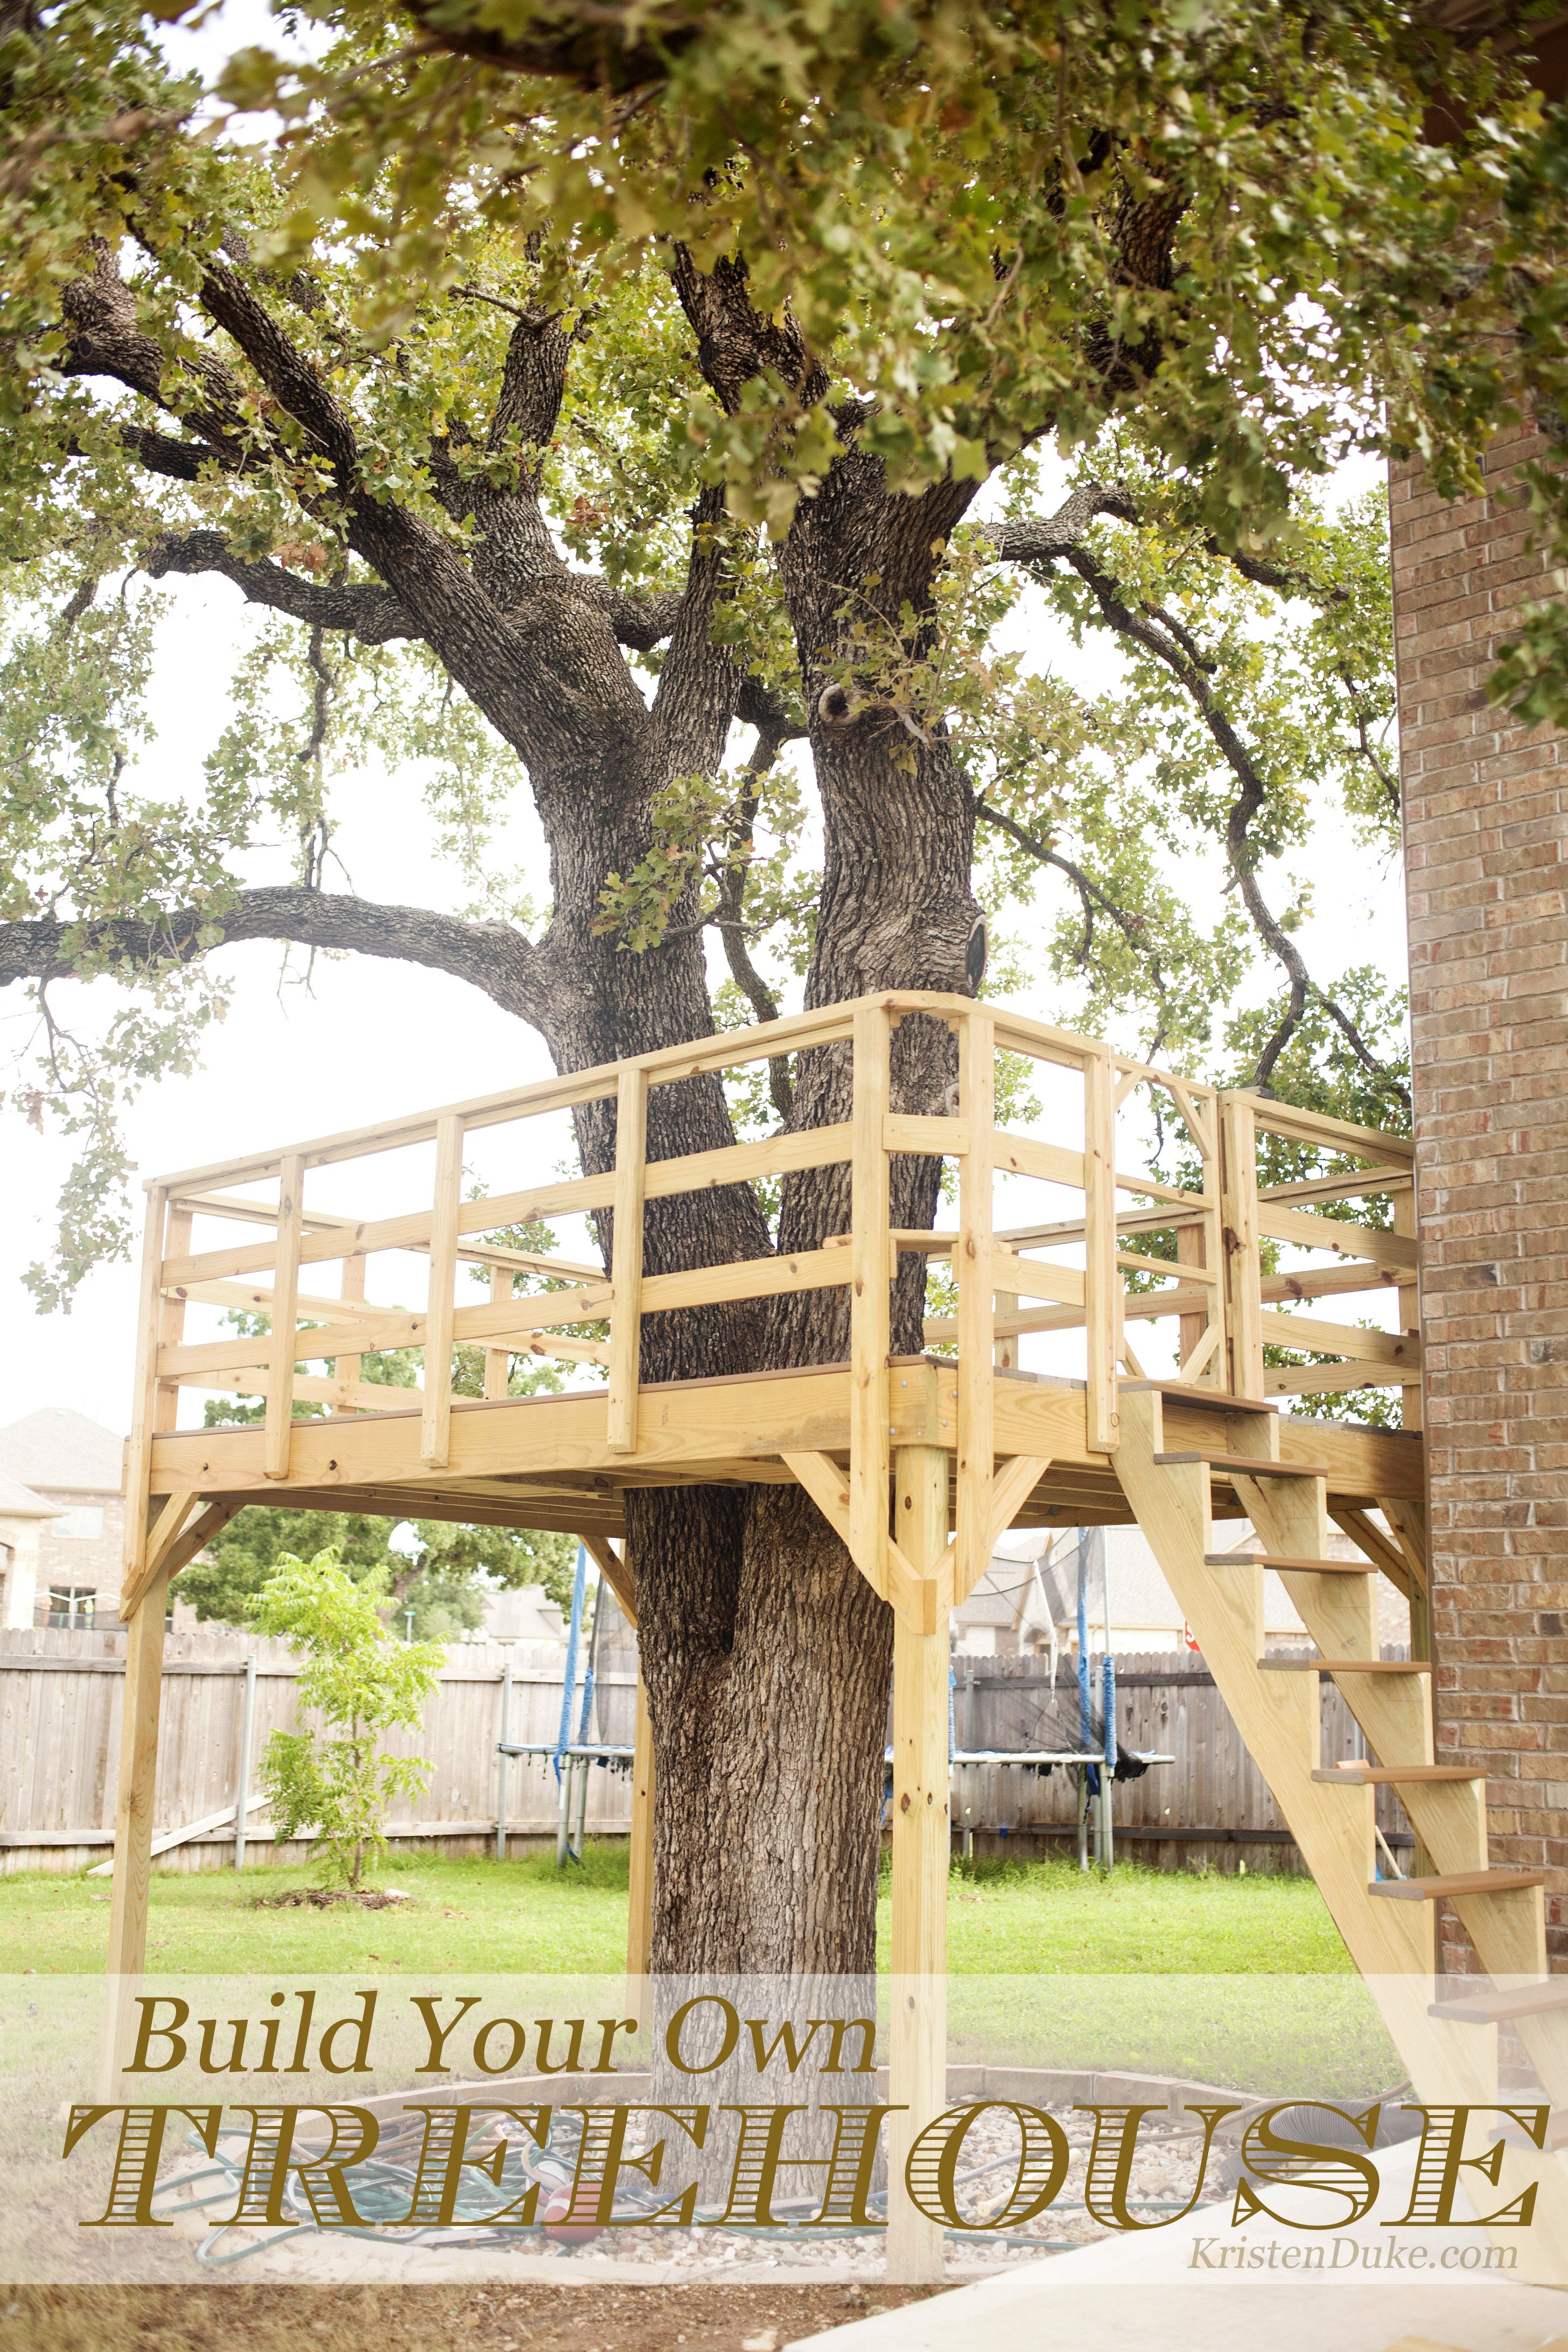 Build Your Own Treehouse Blogger Home Projects We Love